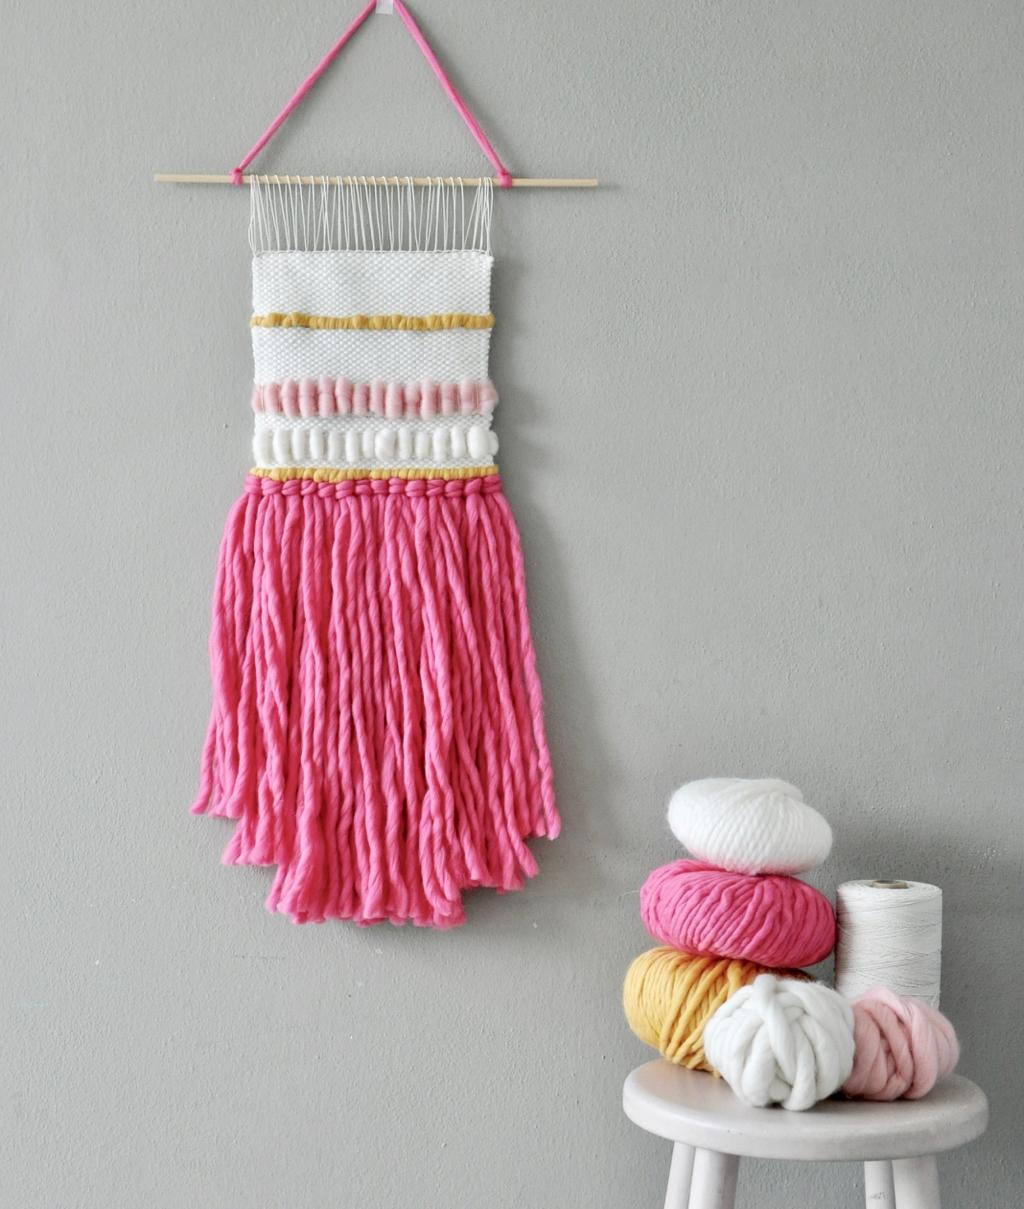 Home Decor Collection - Weaving KitS - ICE CREAM WALL HANGING - 1